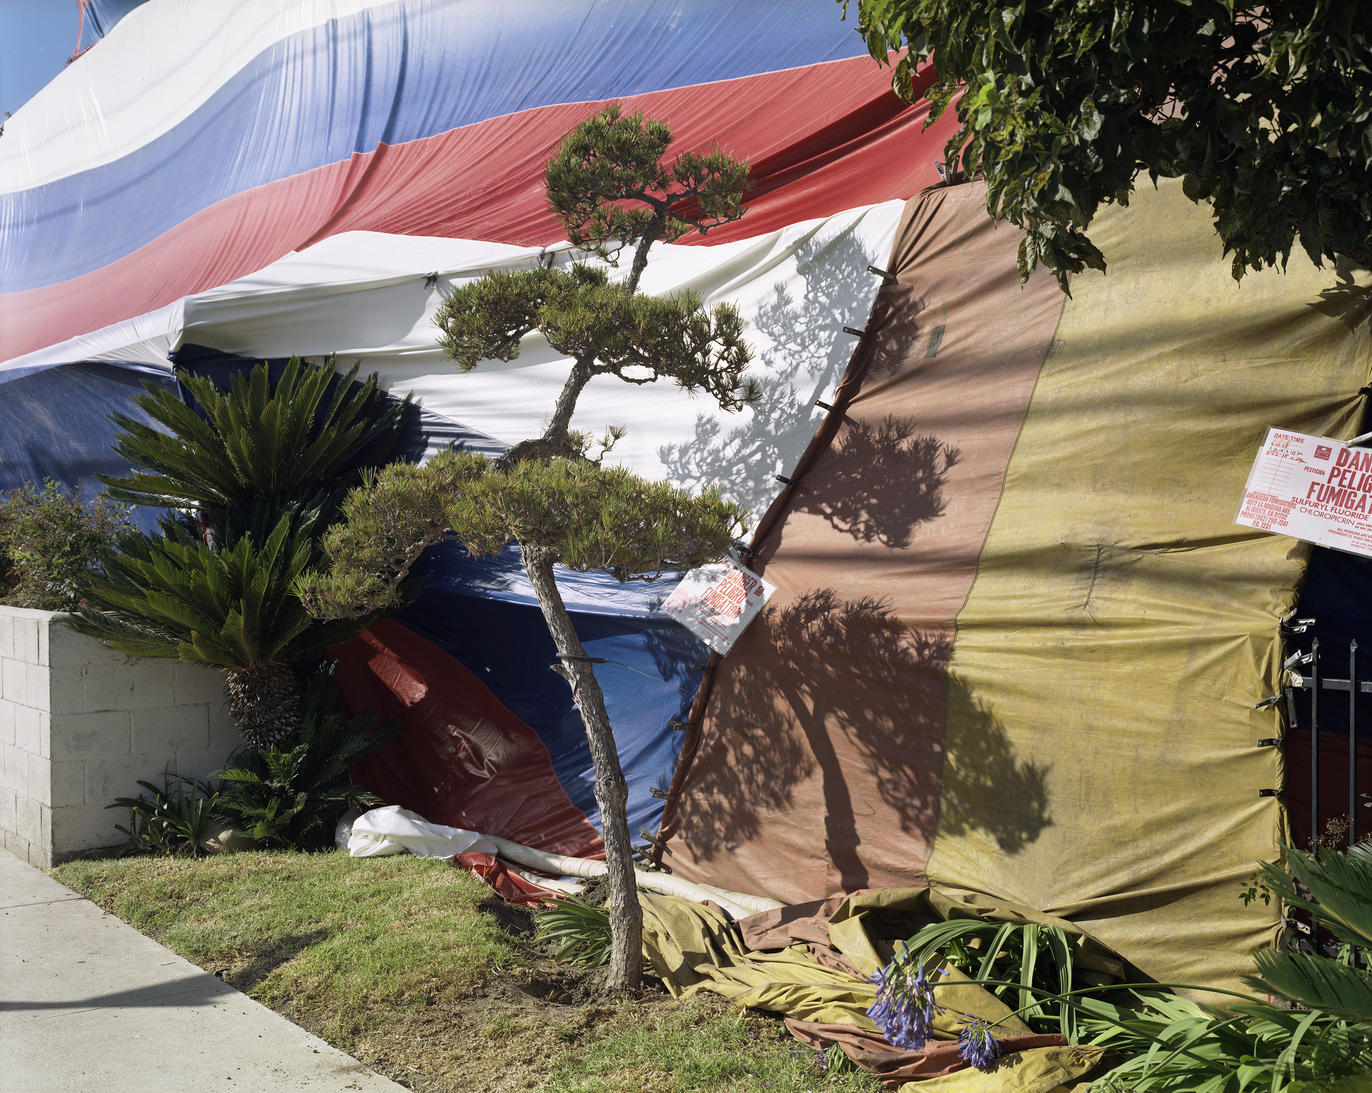 Fumigation Jungle, Los Angeles, USA, 2018